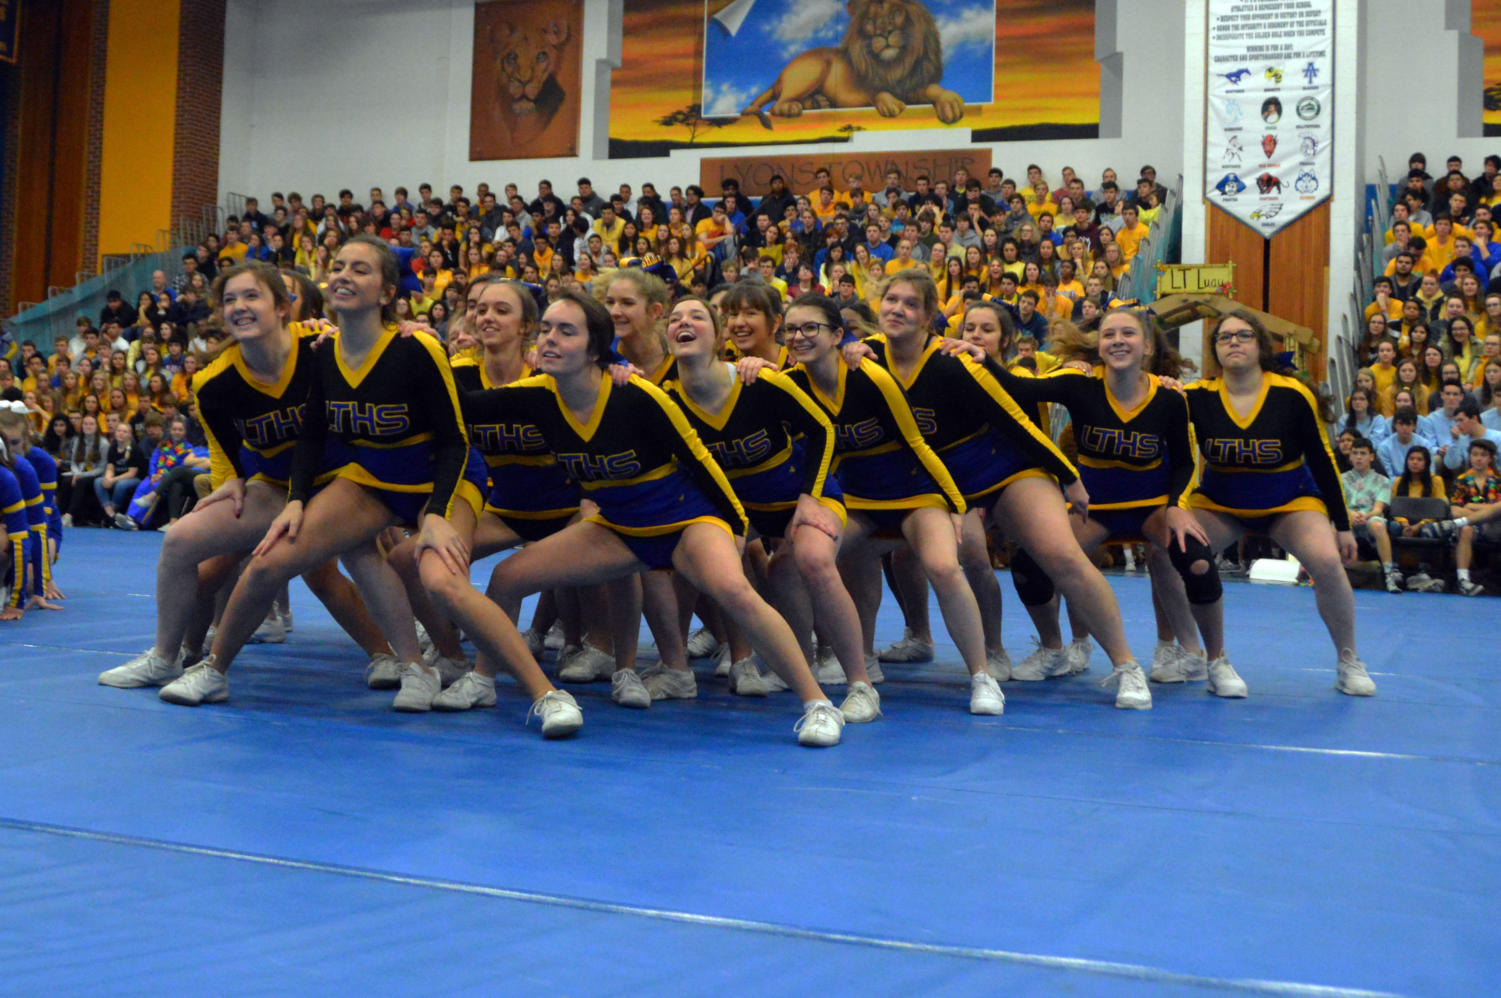 Cheerleaders+moves+together+during+their+routine.